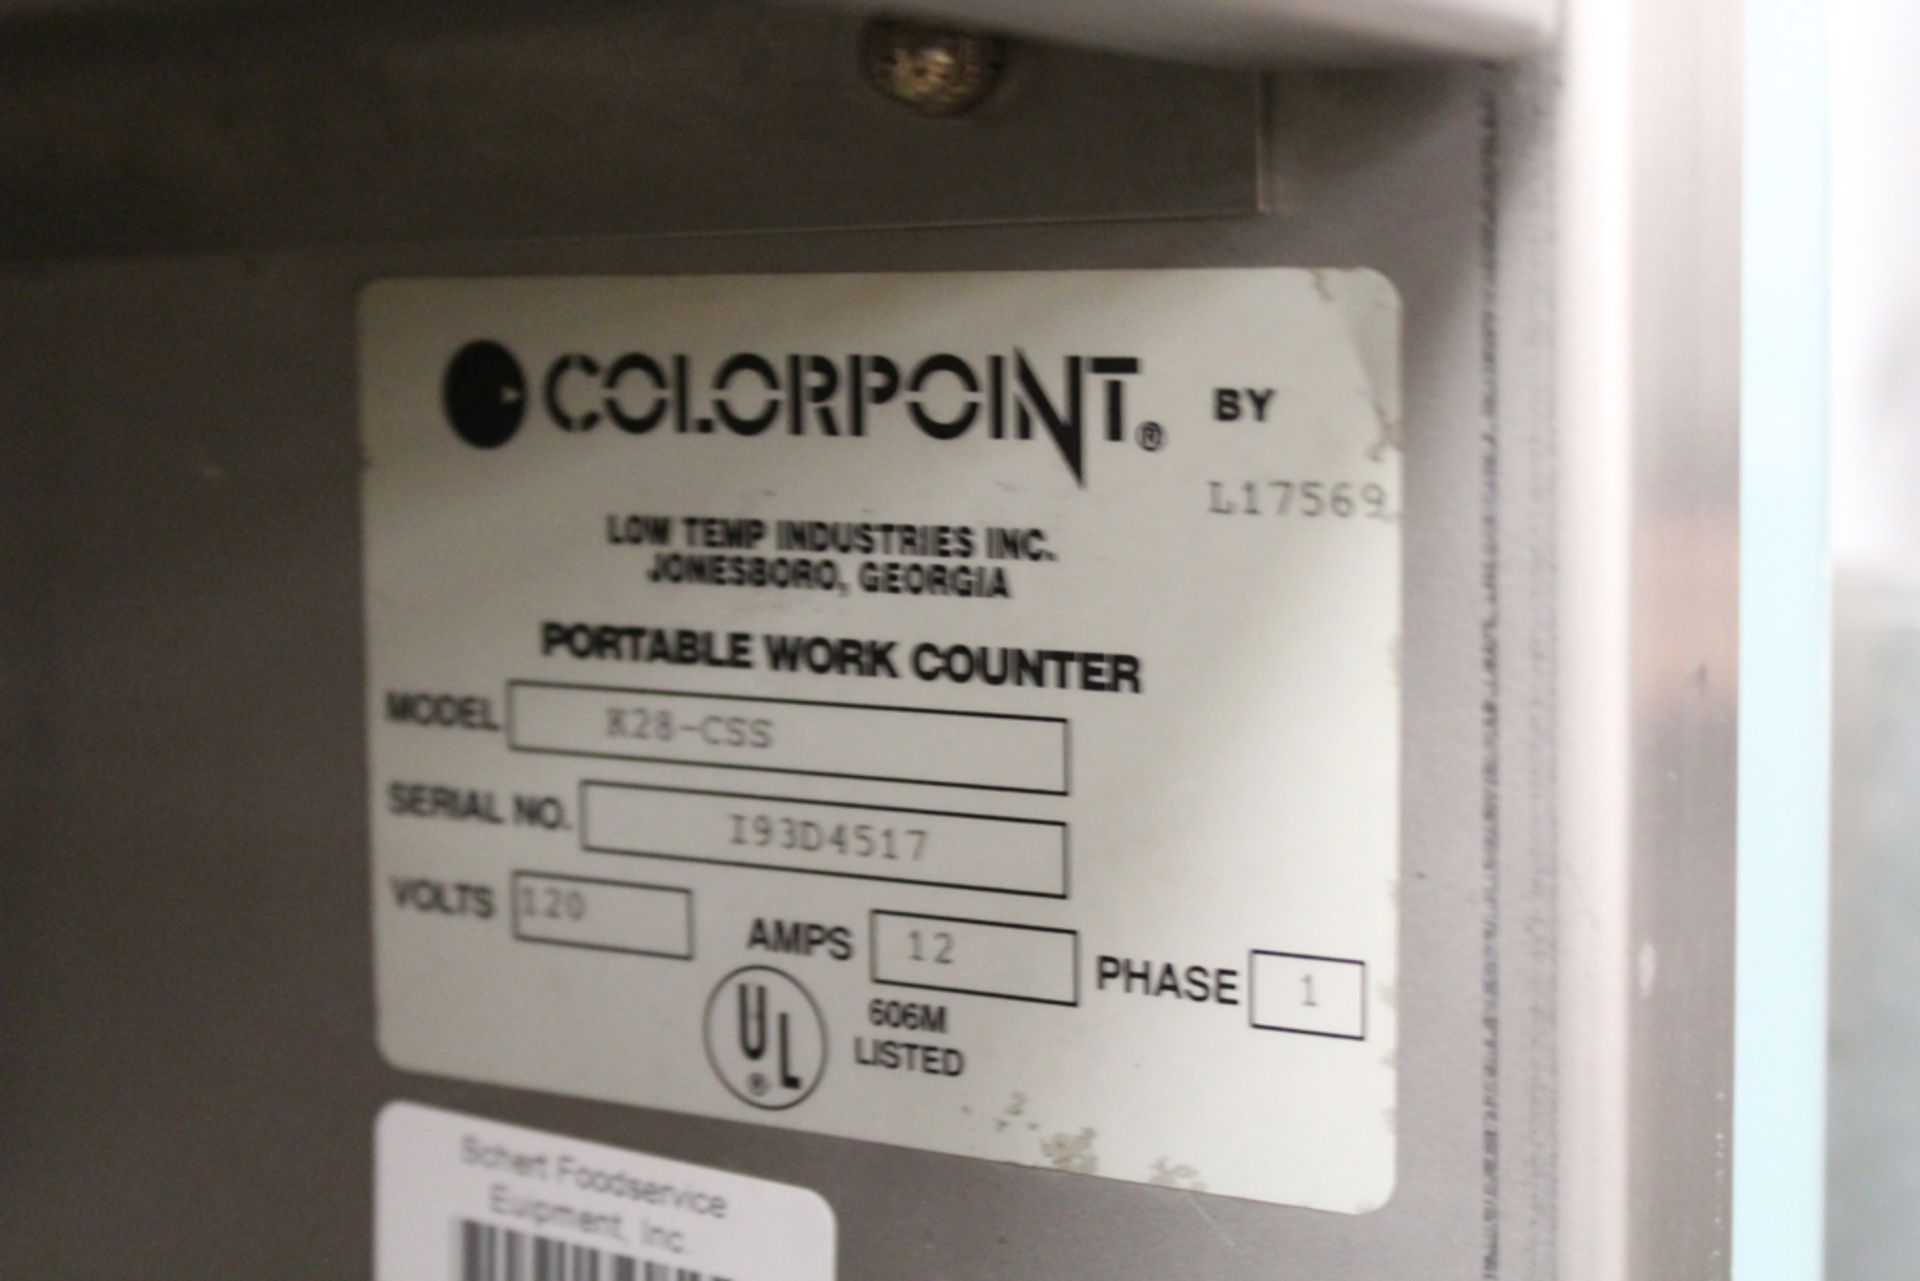 Lot 54 - colorpoint model K28-CSS portable work counter